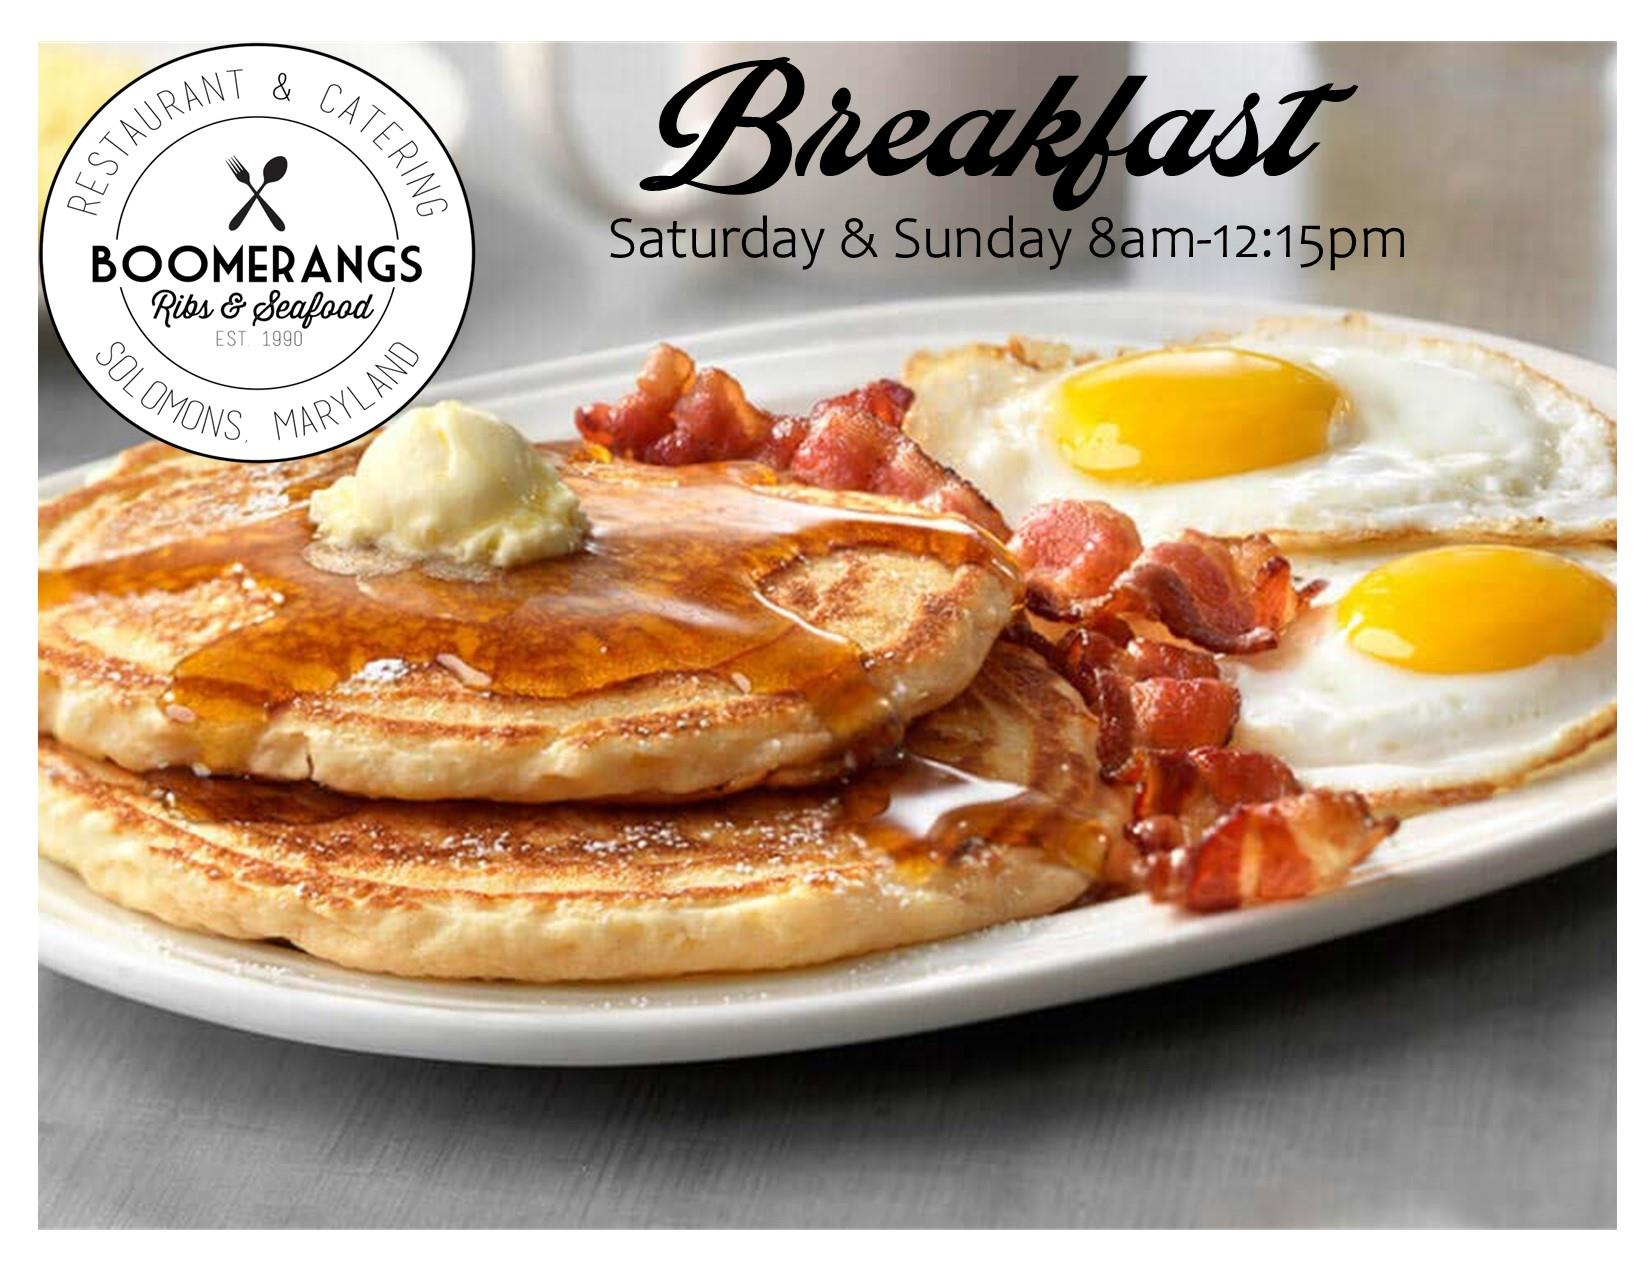 Breakfast Saturday & Sunday 8am-12:15pm, picture of pancakes, bacon and eggs